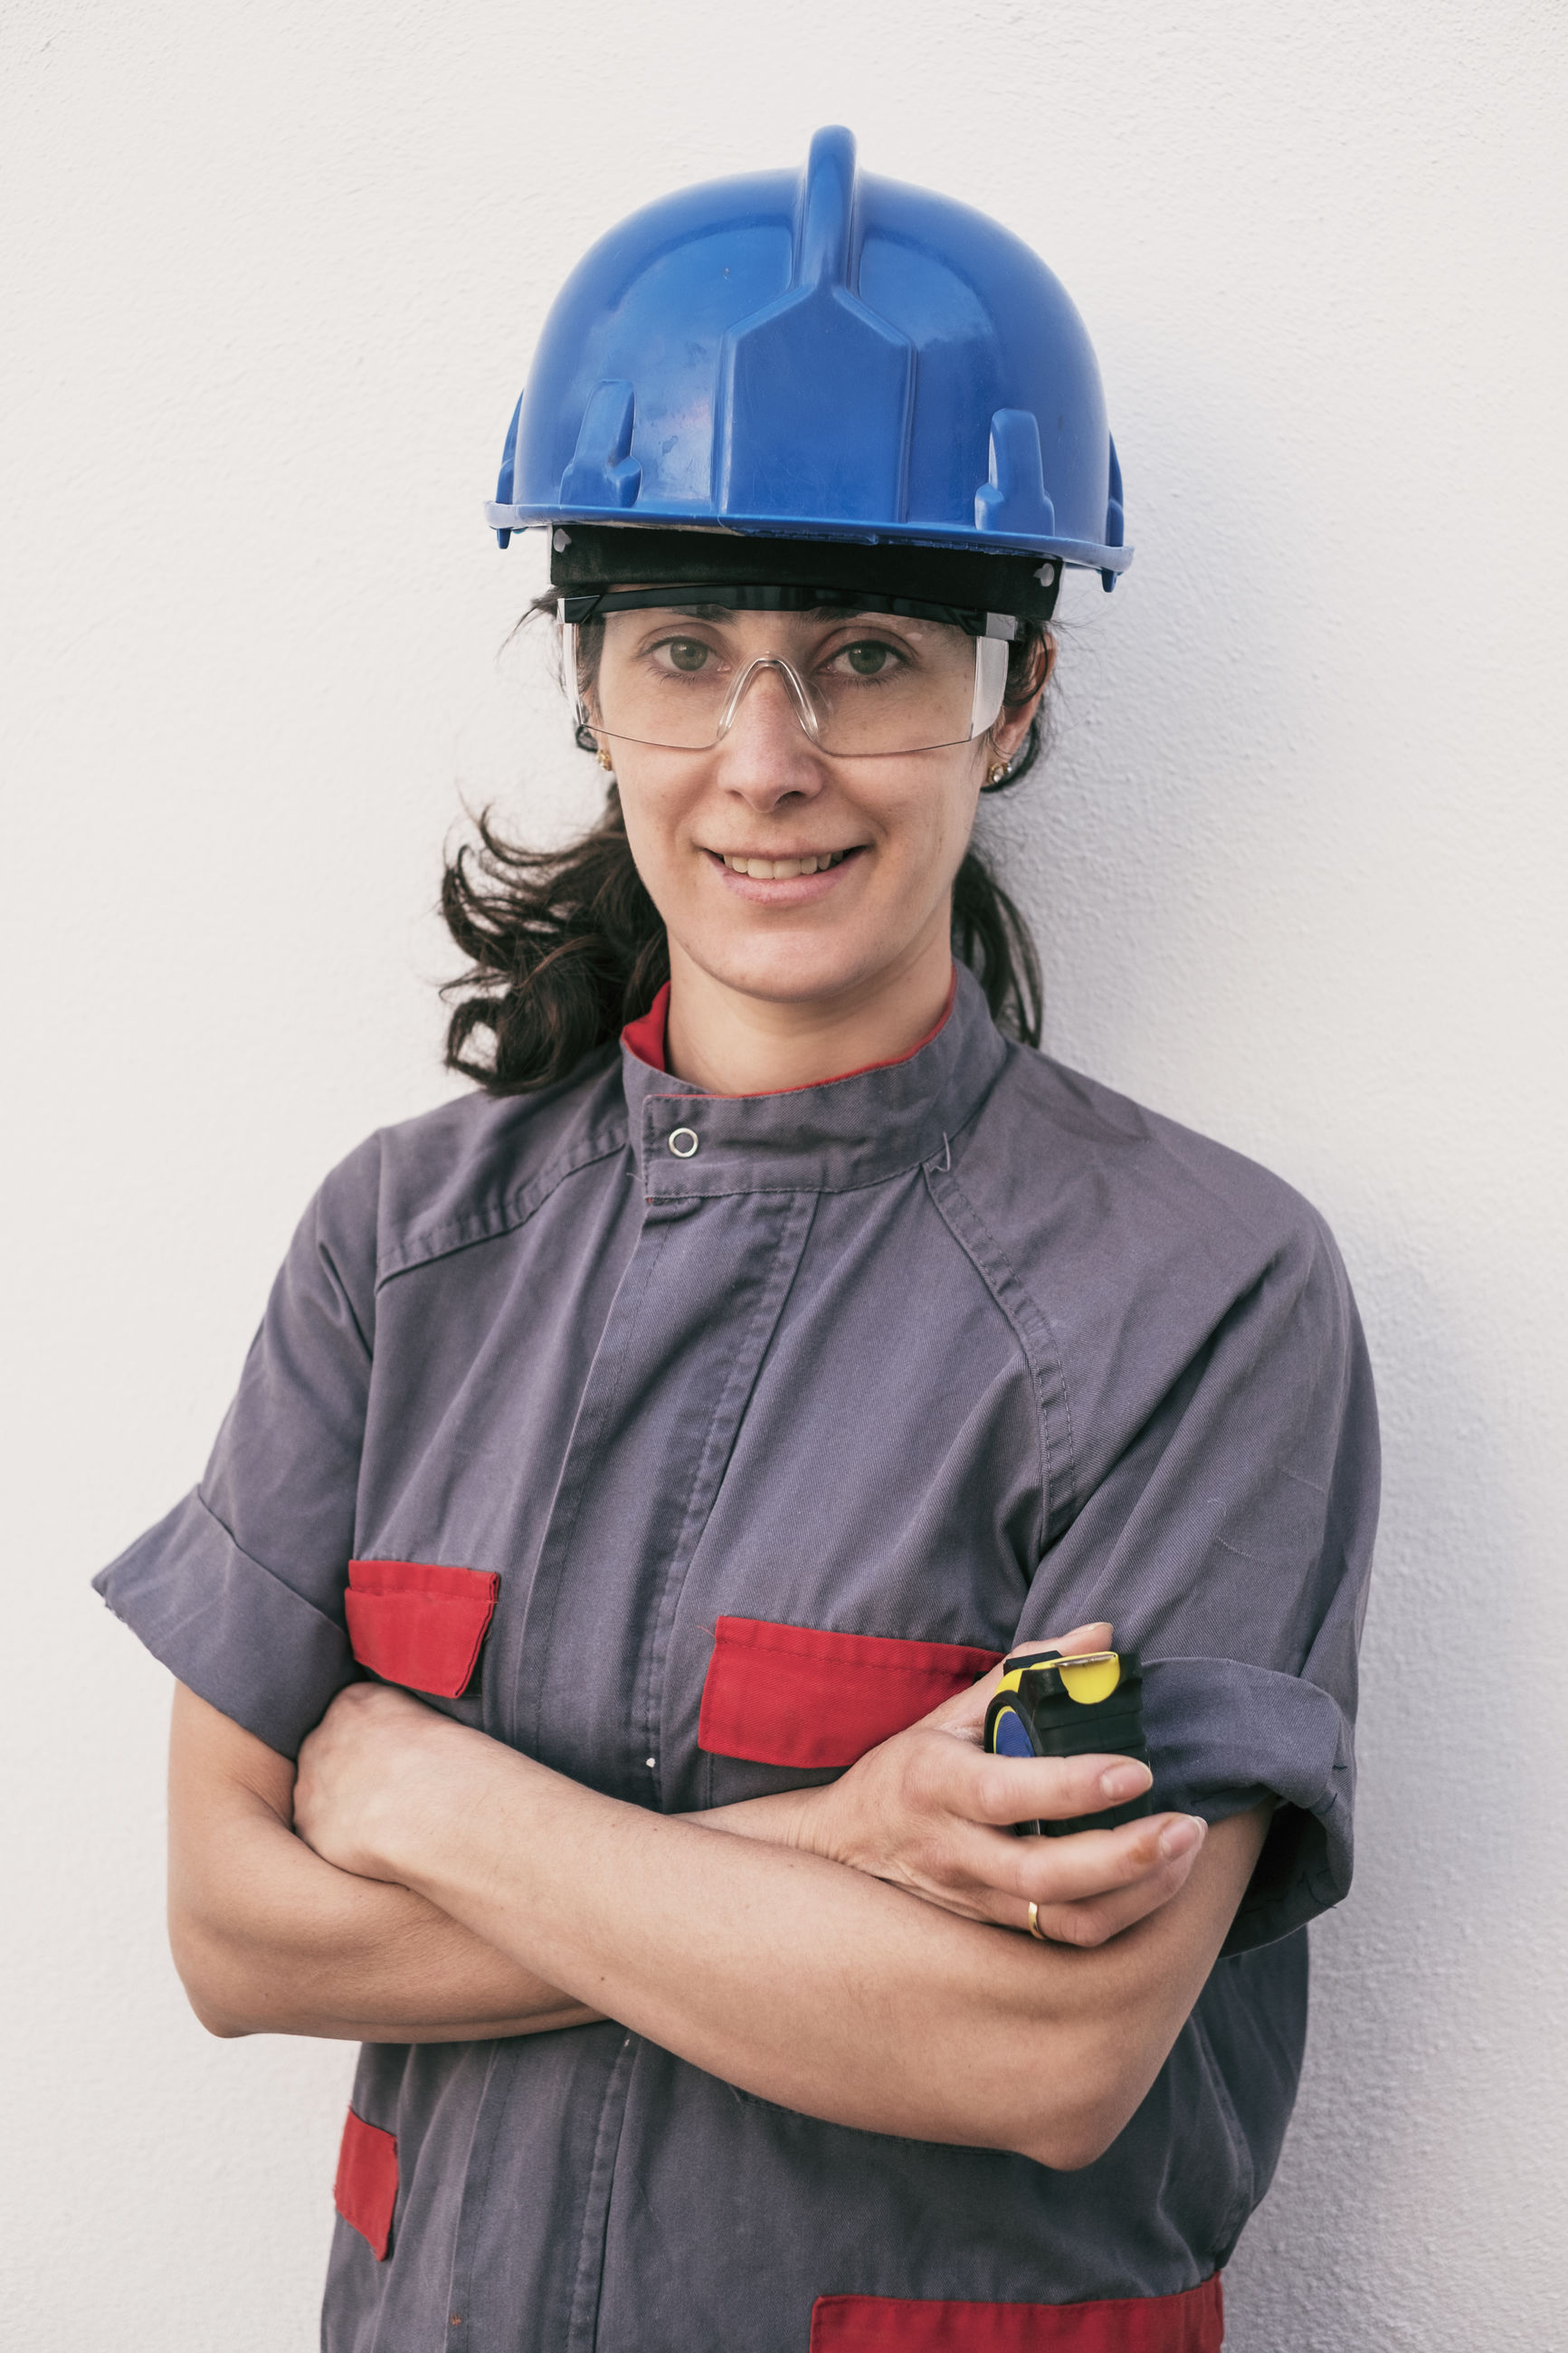 Portrait of manual worker standing against white background